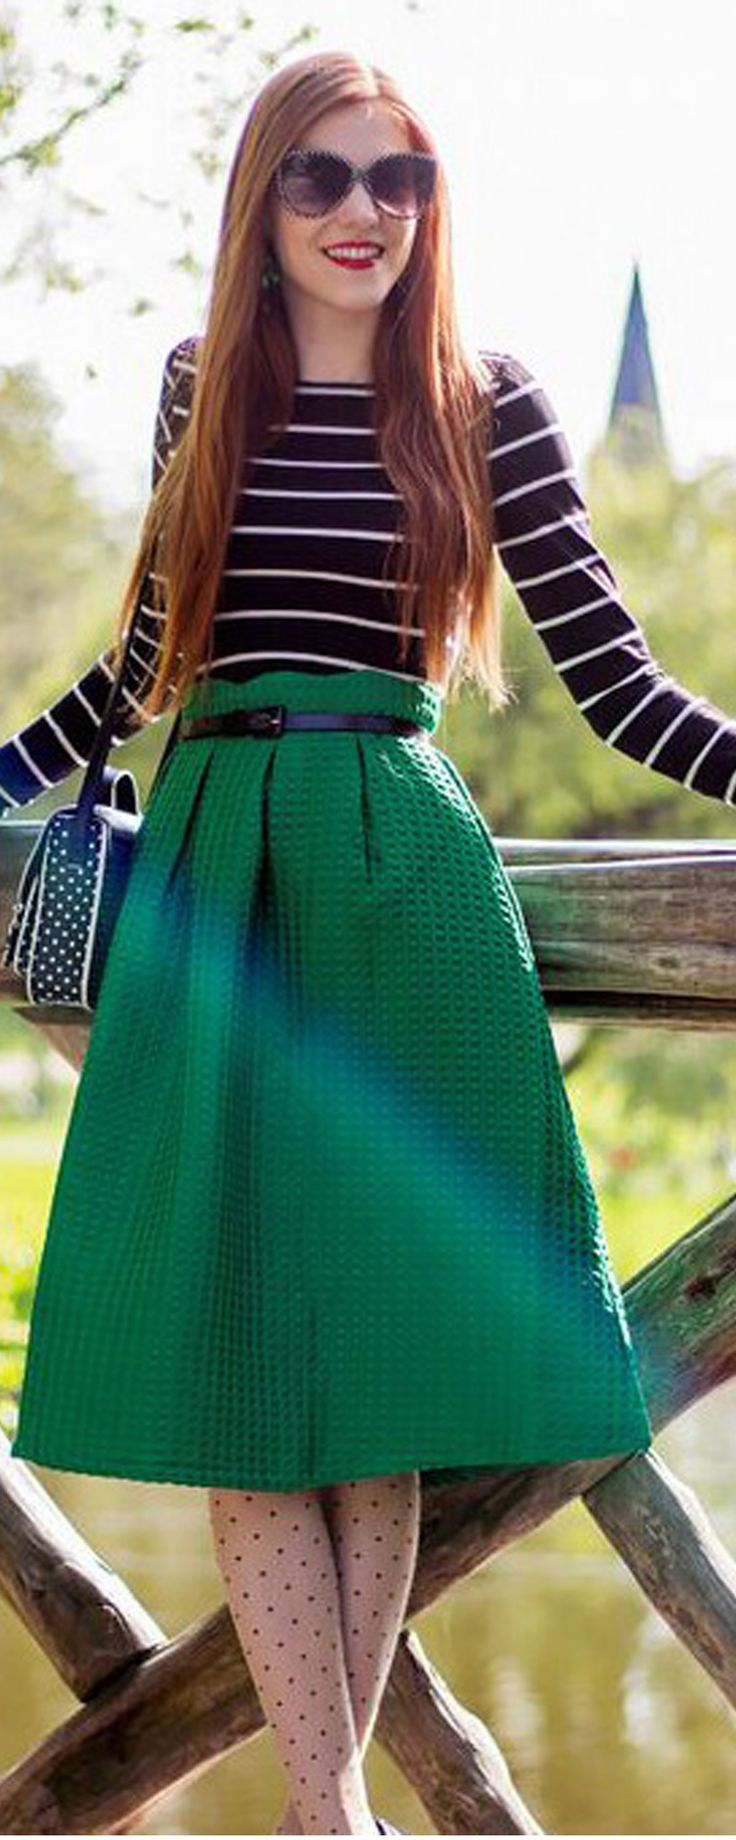 Very cute skirt with eyelet pattern. Nice colour, heavy material and good details around the waist.Modern vintage style perfect for the autumn season.